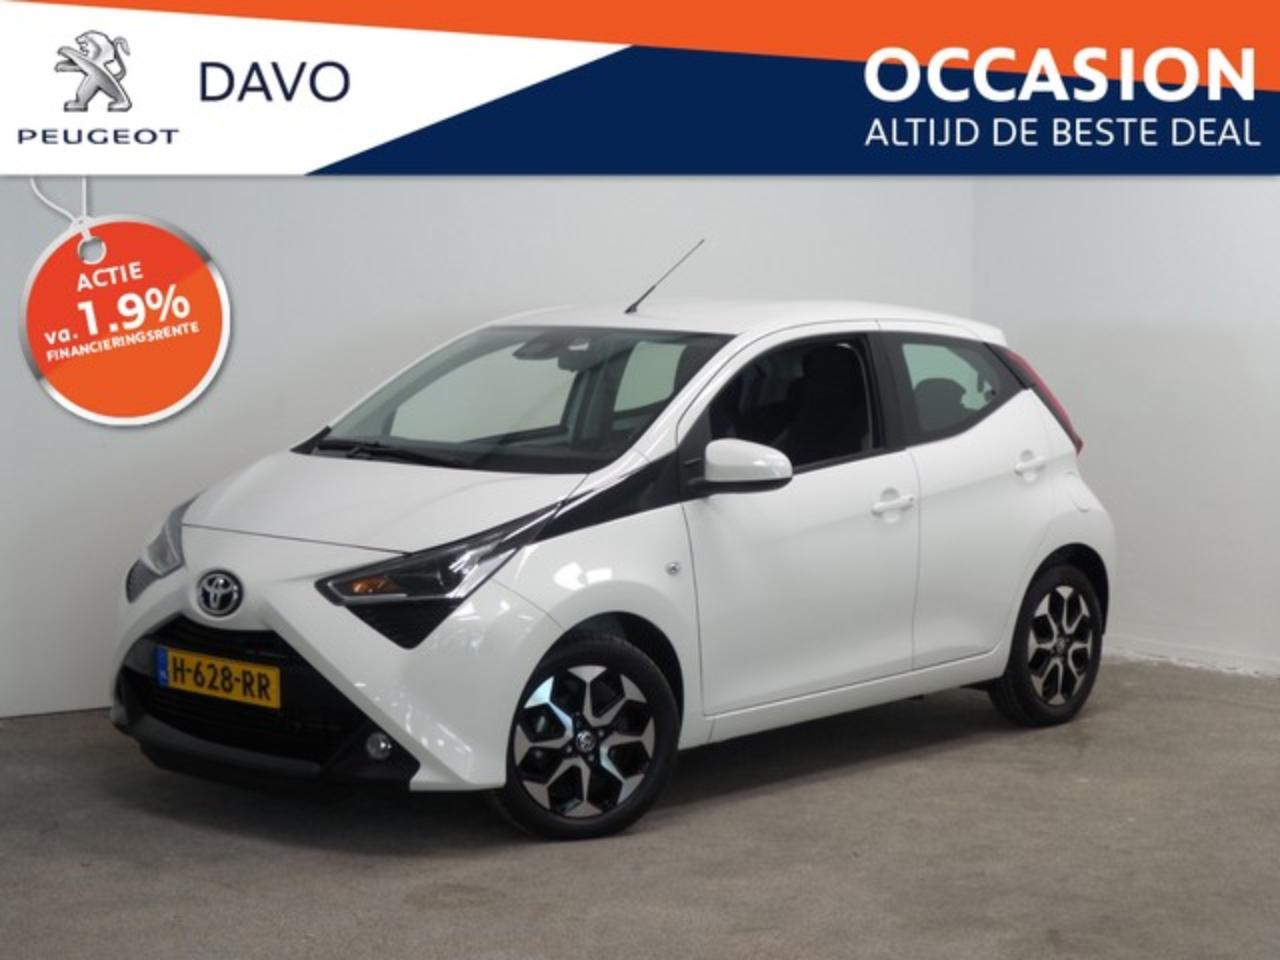 Toyota Aygo 1.0 VVT-i X-JOY ! LUXE UITVOERING ! CAMERA & APPLE